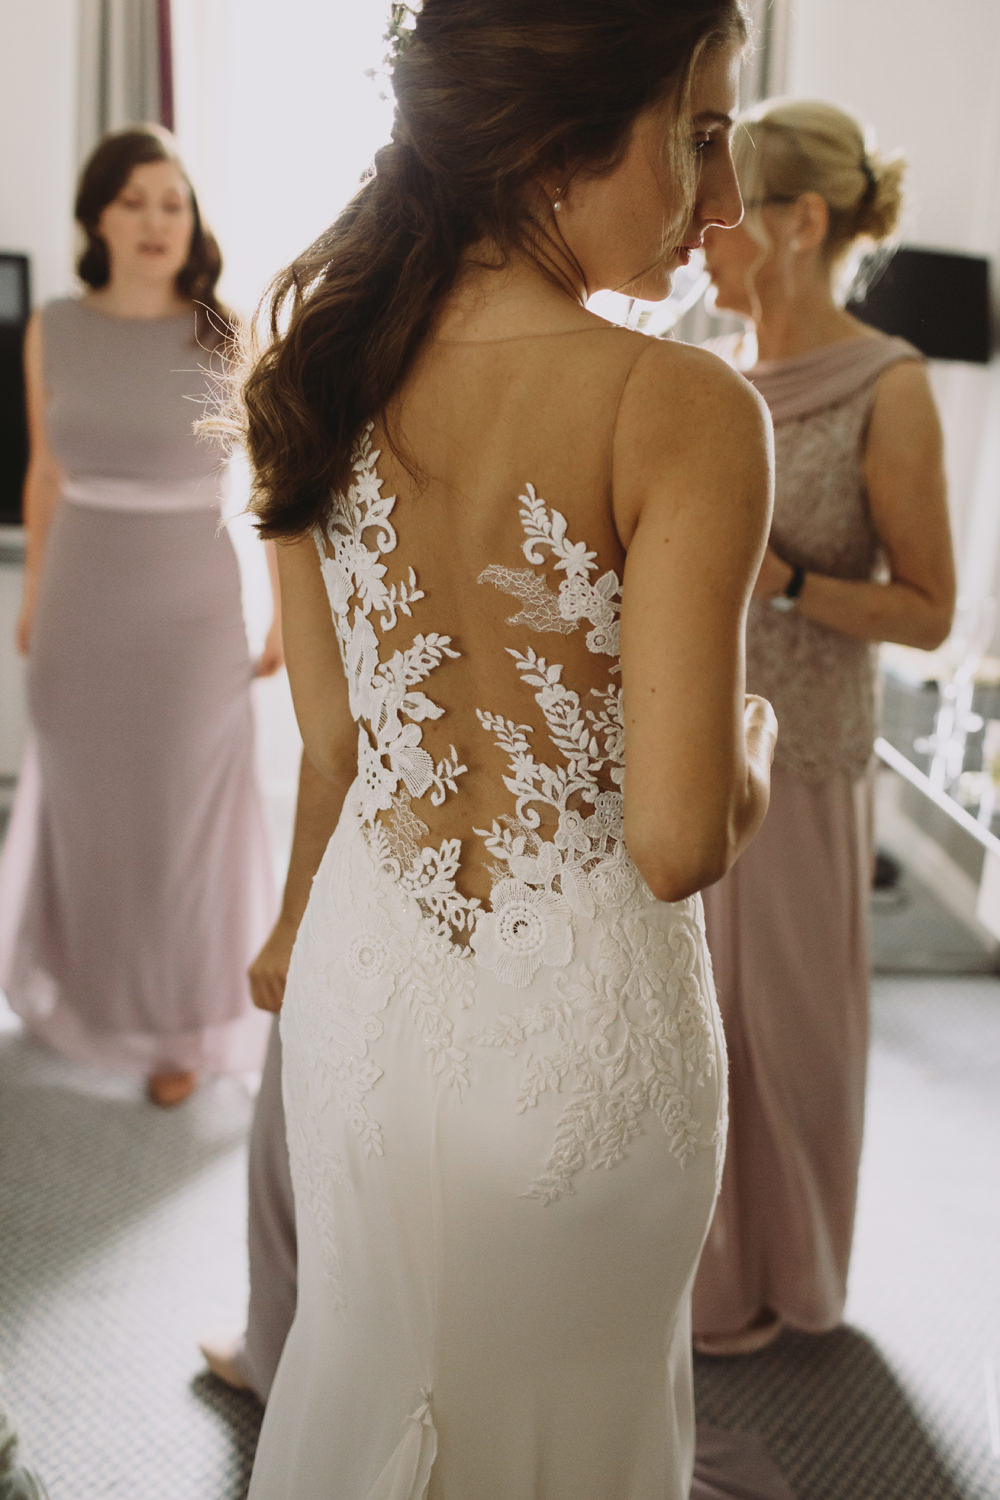 Bride Bridal Illusion Lace Pronovias Dress Gown Tram House Wedding Luke Hayden Photography